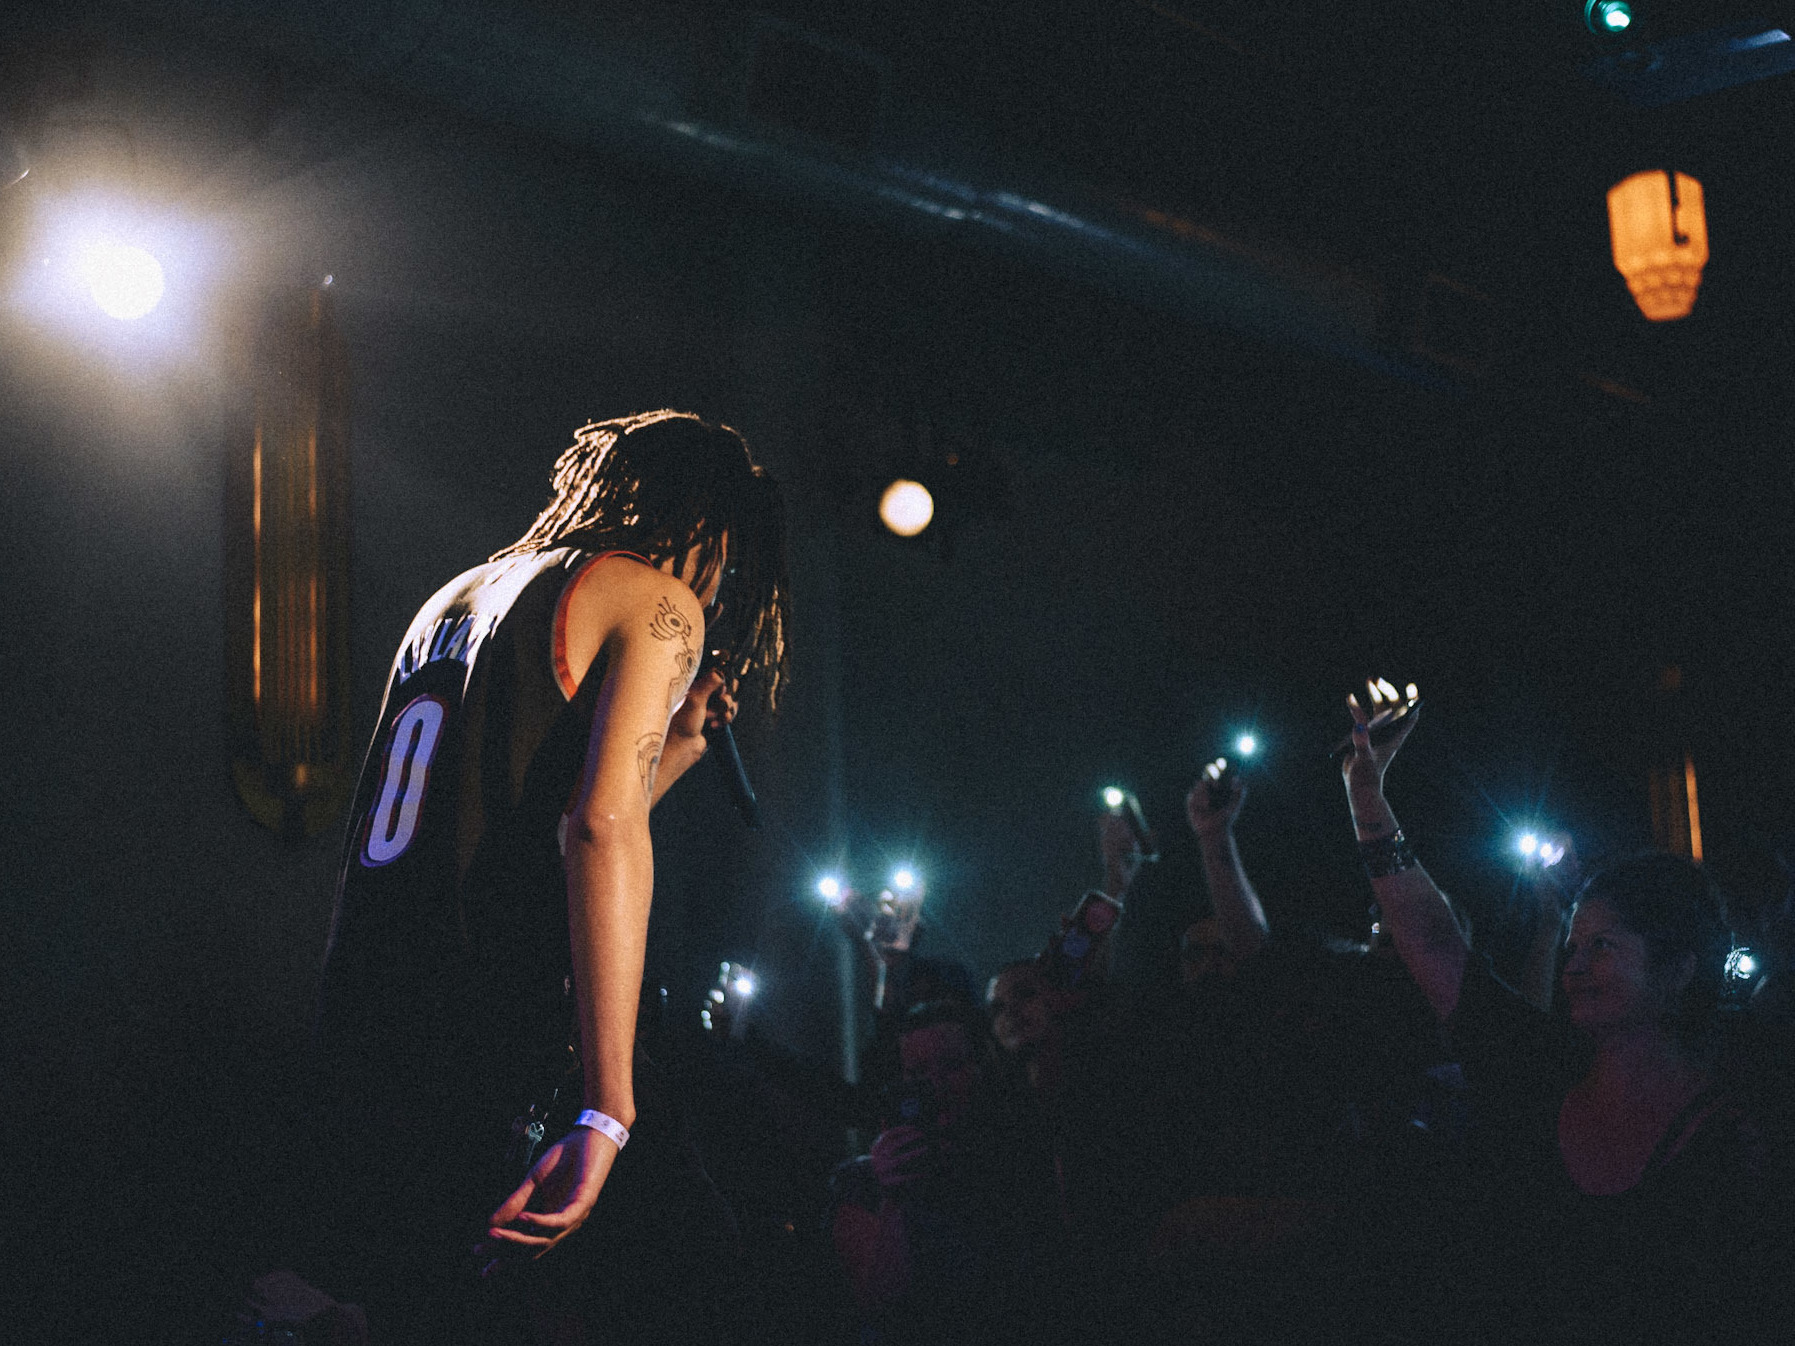 Portland-based rapper Danny Sky performs at Kelly's Olympian as part of the hip-pop showcase, The Thesis.